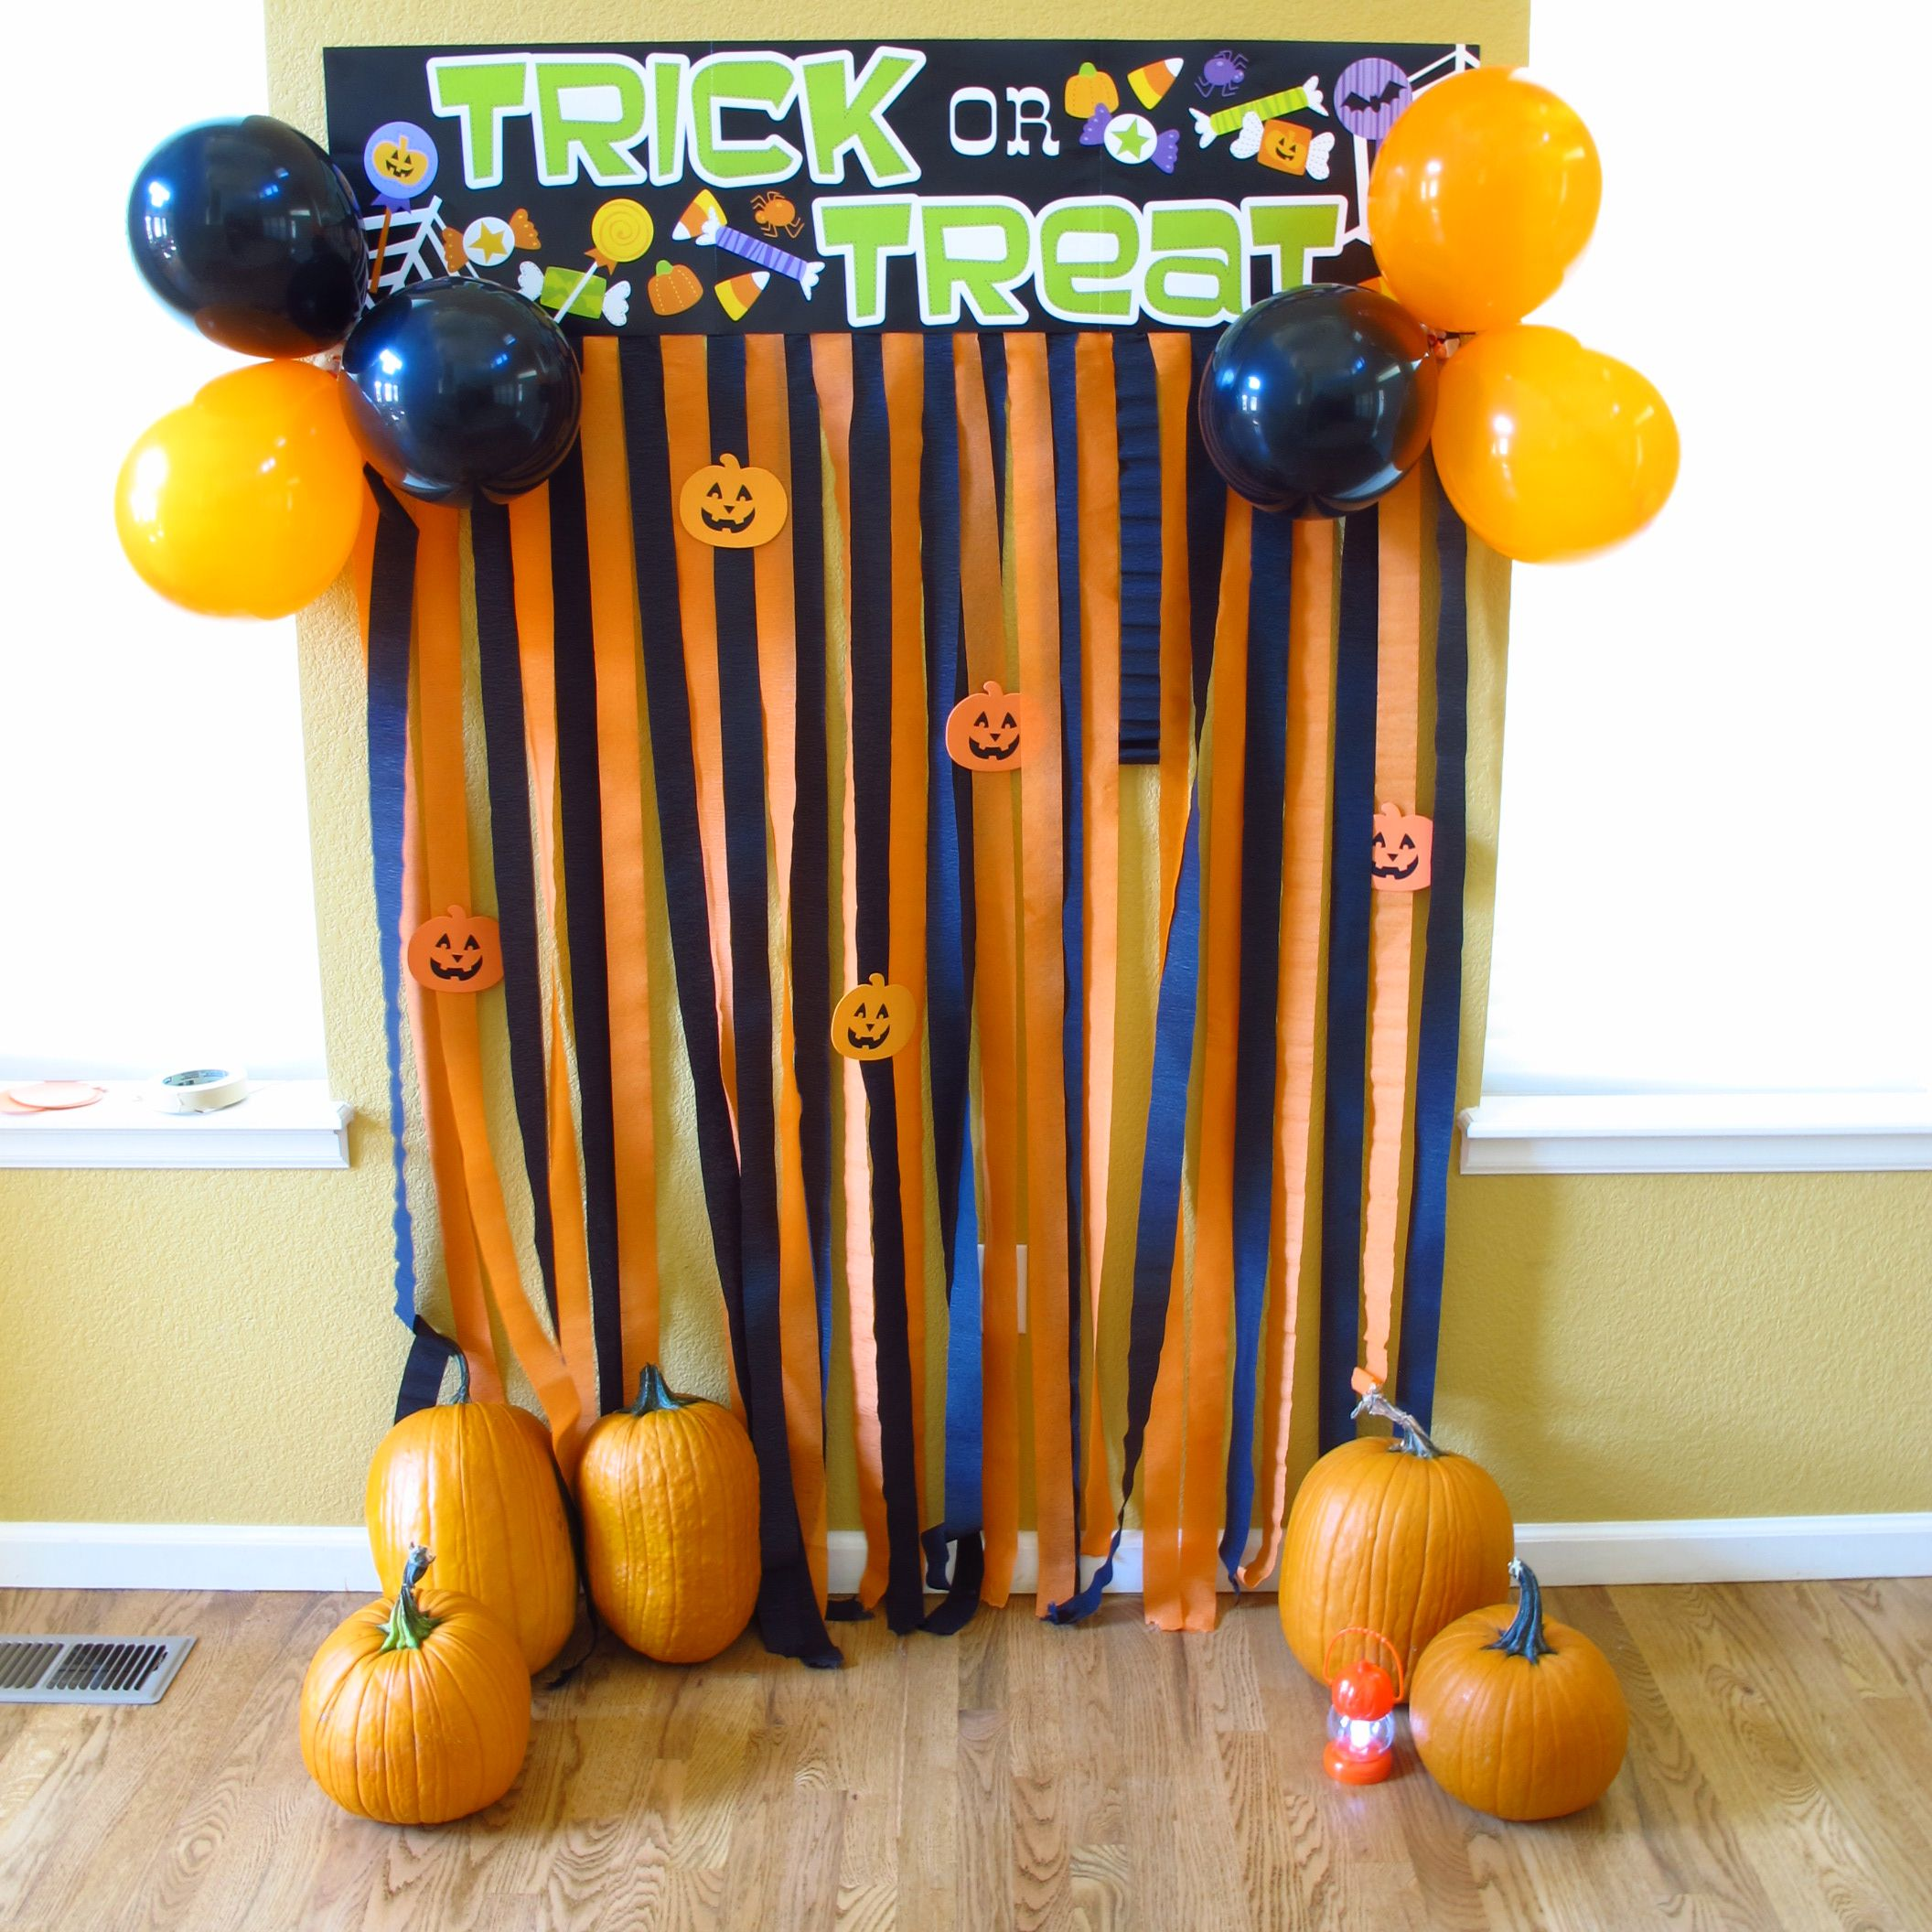 Halloween Photobooth Photo Backdrop I Just Made From Dollar Store